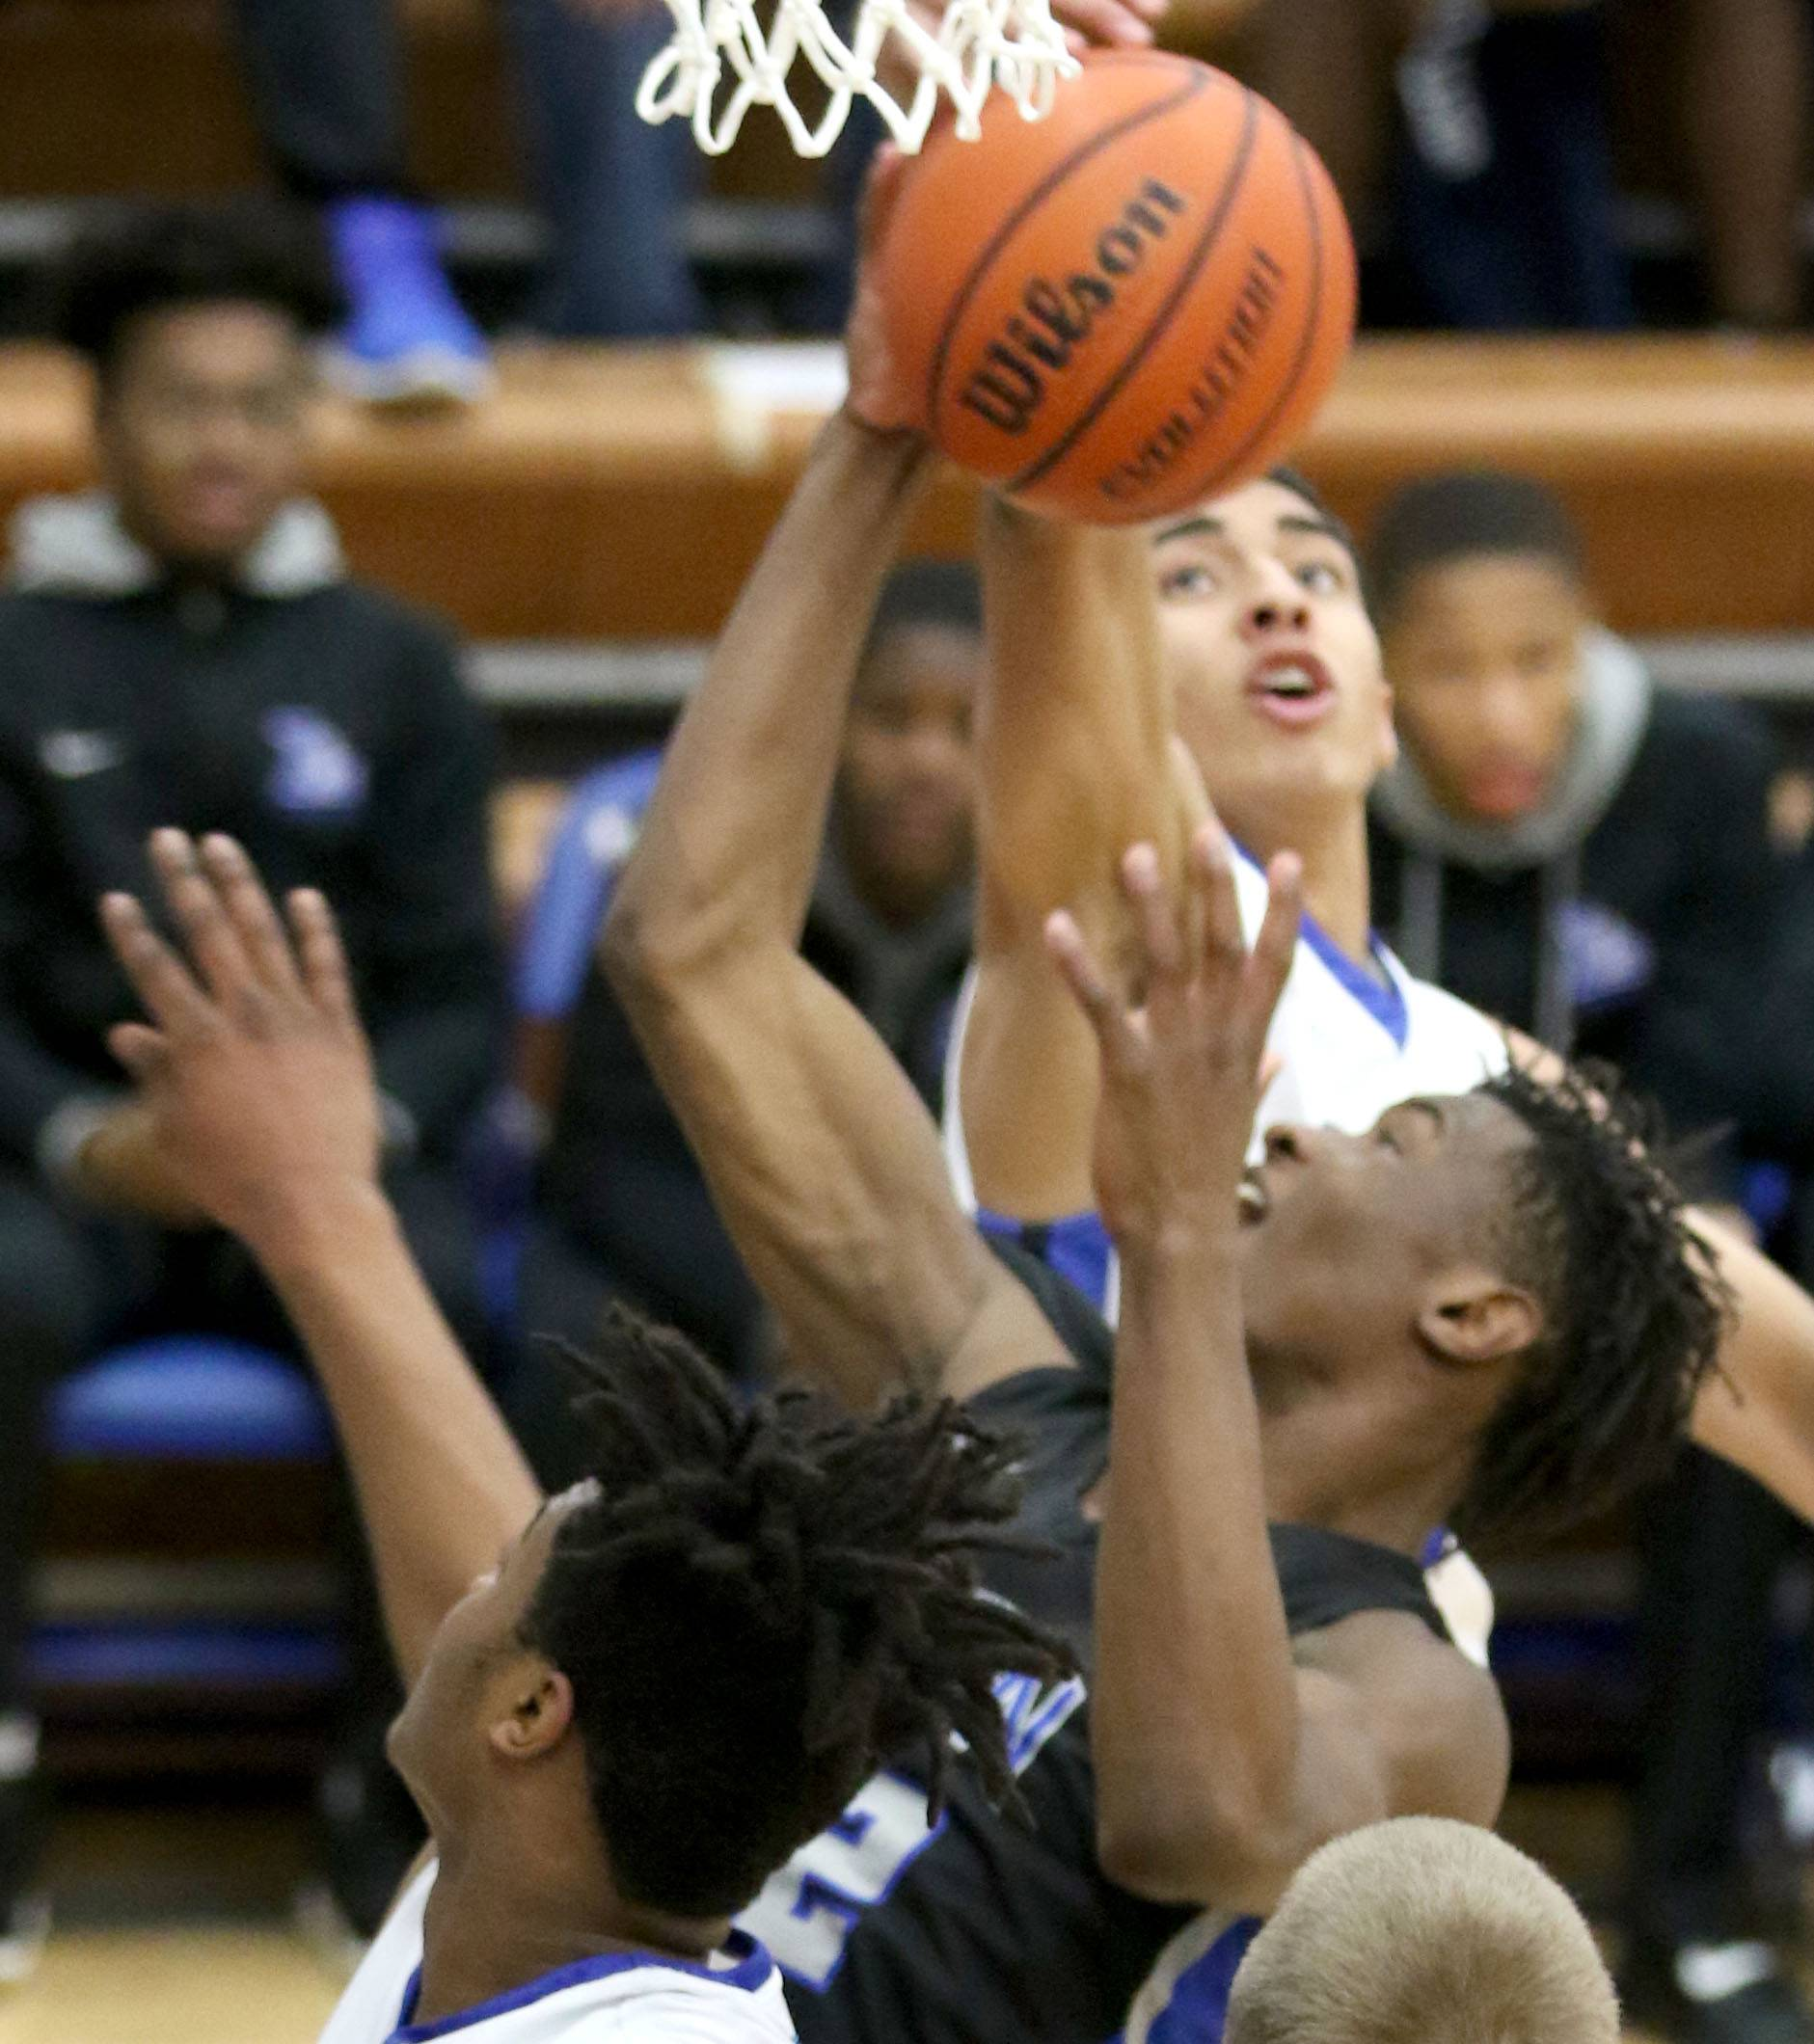 St. Charles North's Tyler Nubin, center, battles for a rebound with Larkin's Jalen Shaw, front, and Victor Perez, back, during a varsity boys basketball game at Larkin High School in Elgin Friday night.